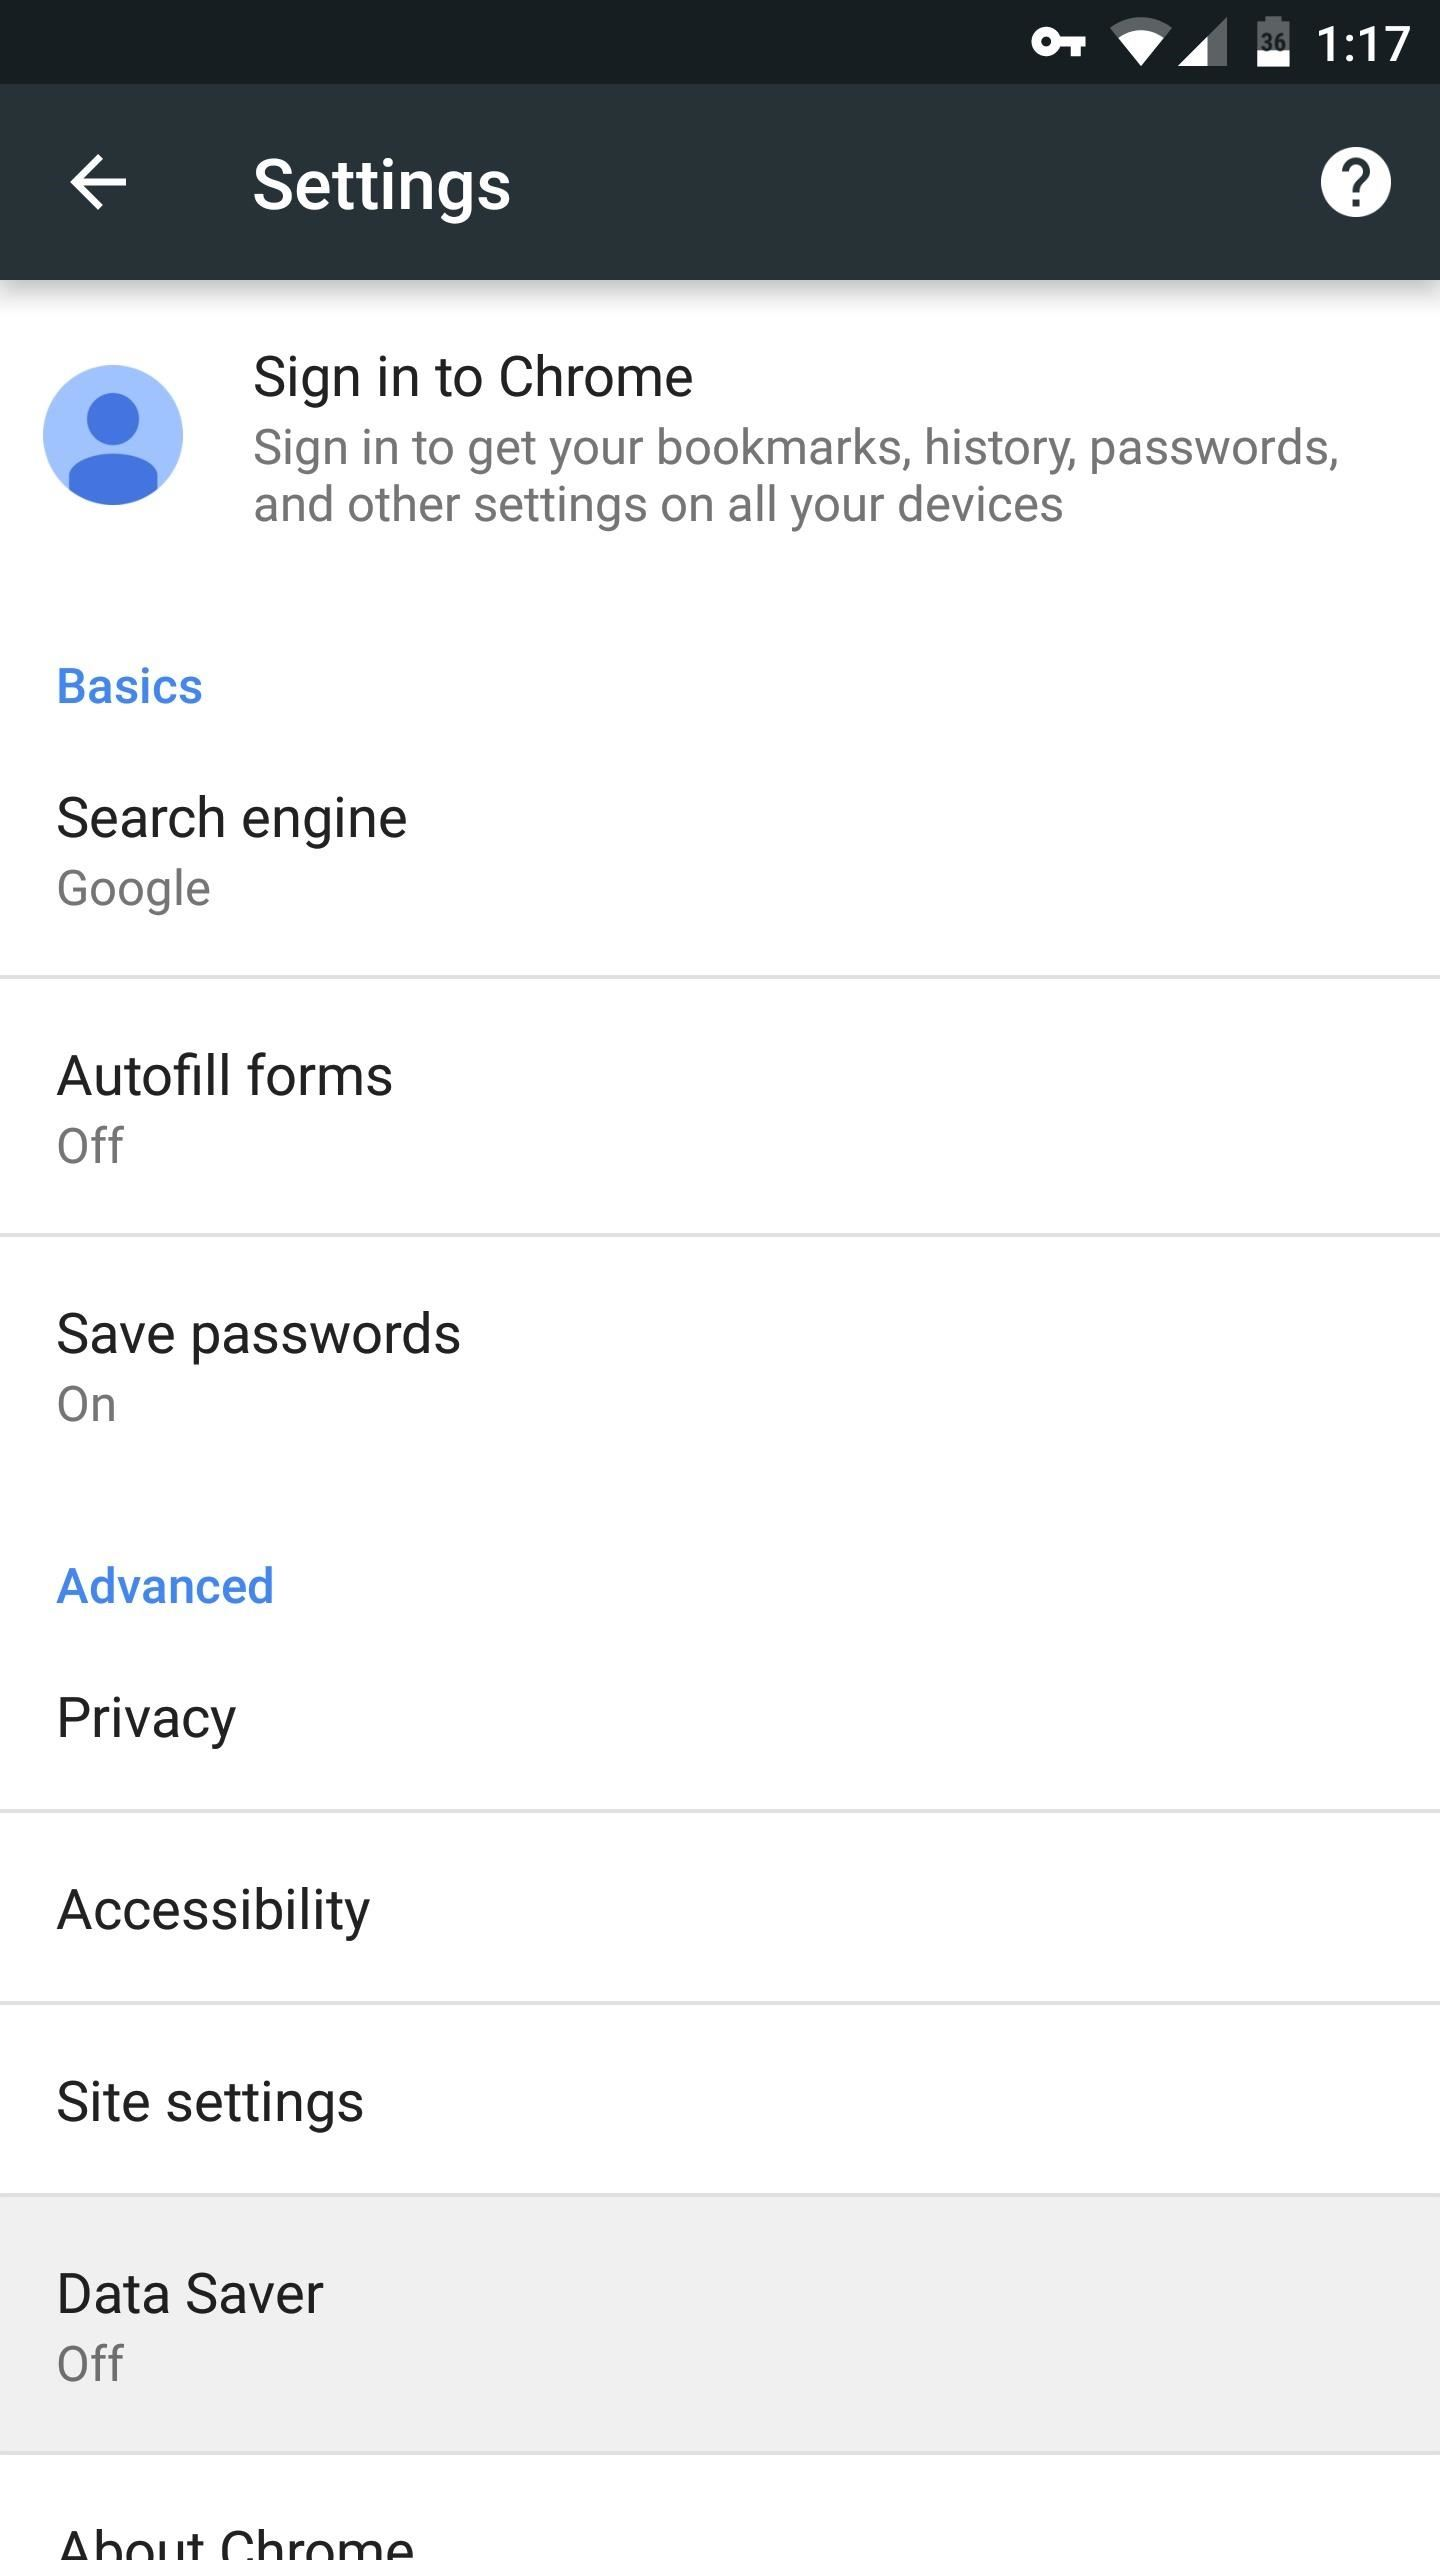 Enable NetGuard's Hidden Ad-Blocking Feature on Your Android Phone